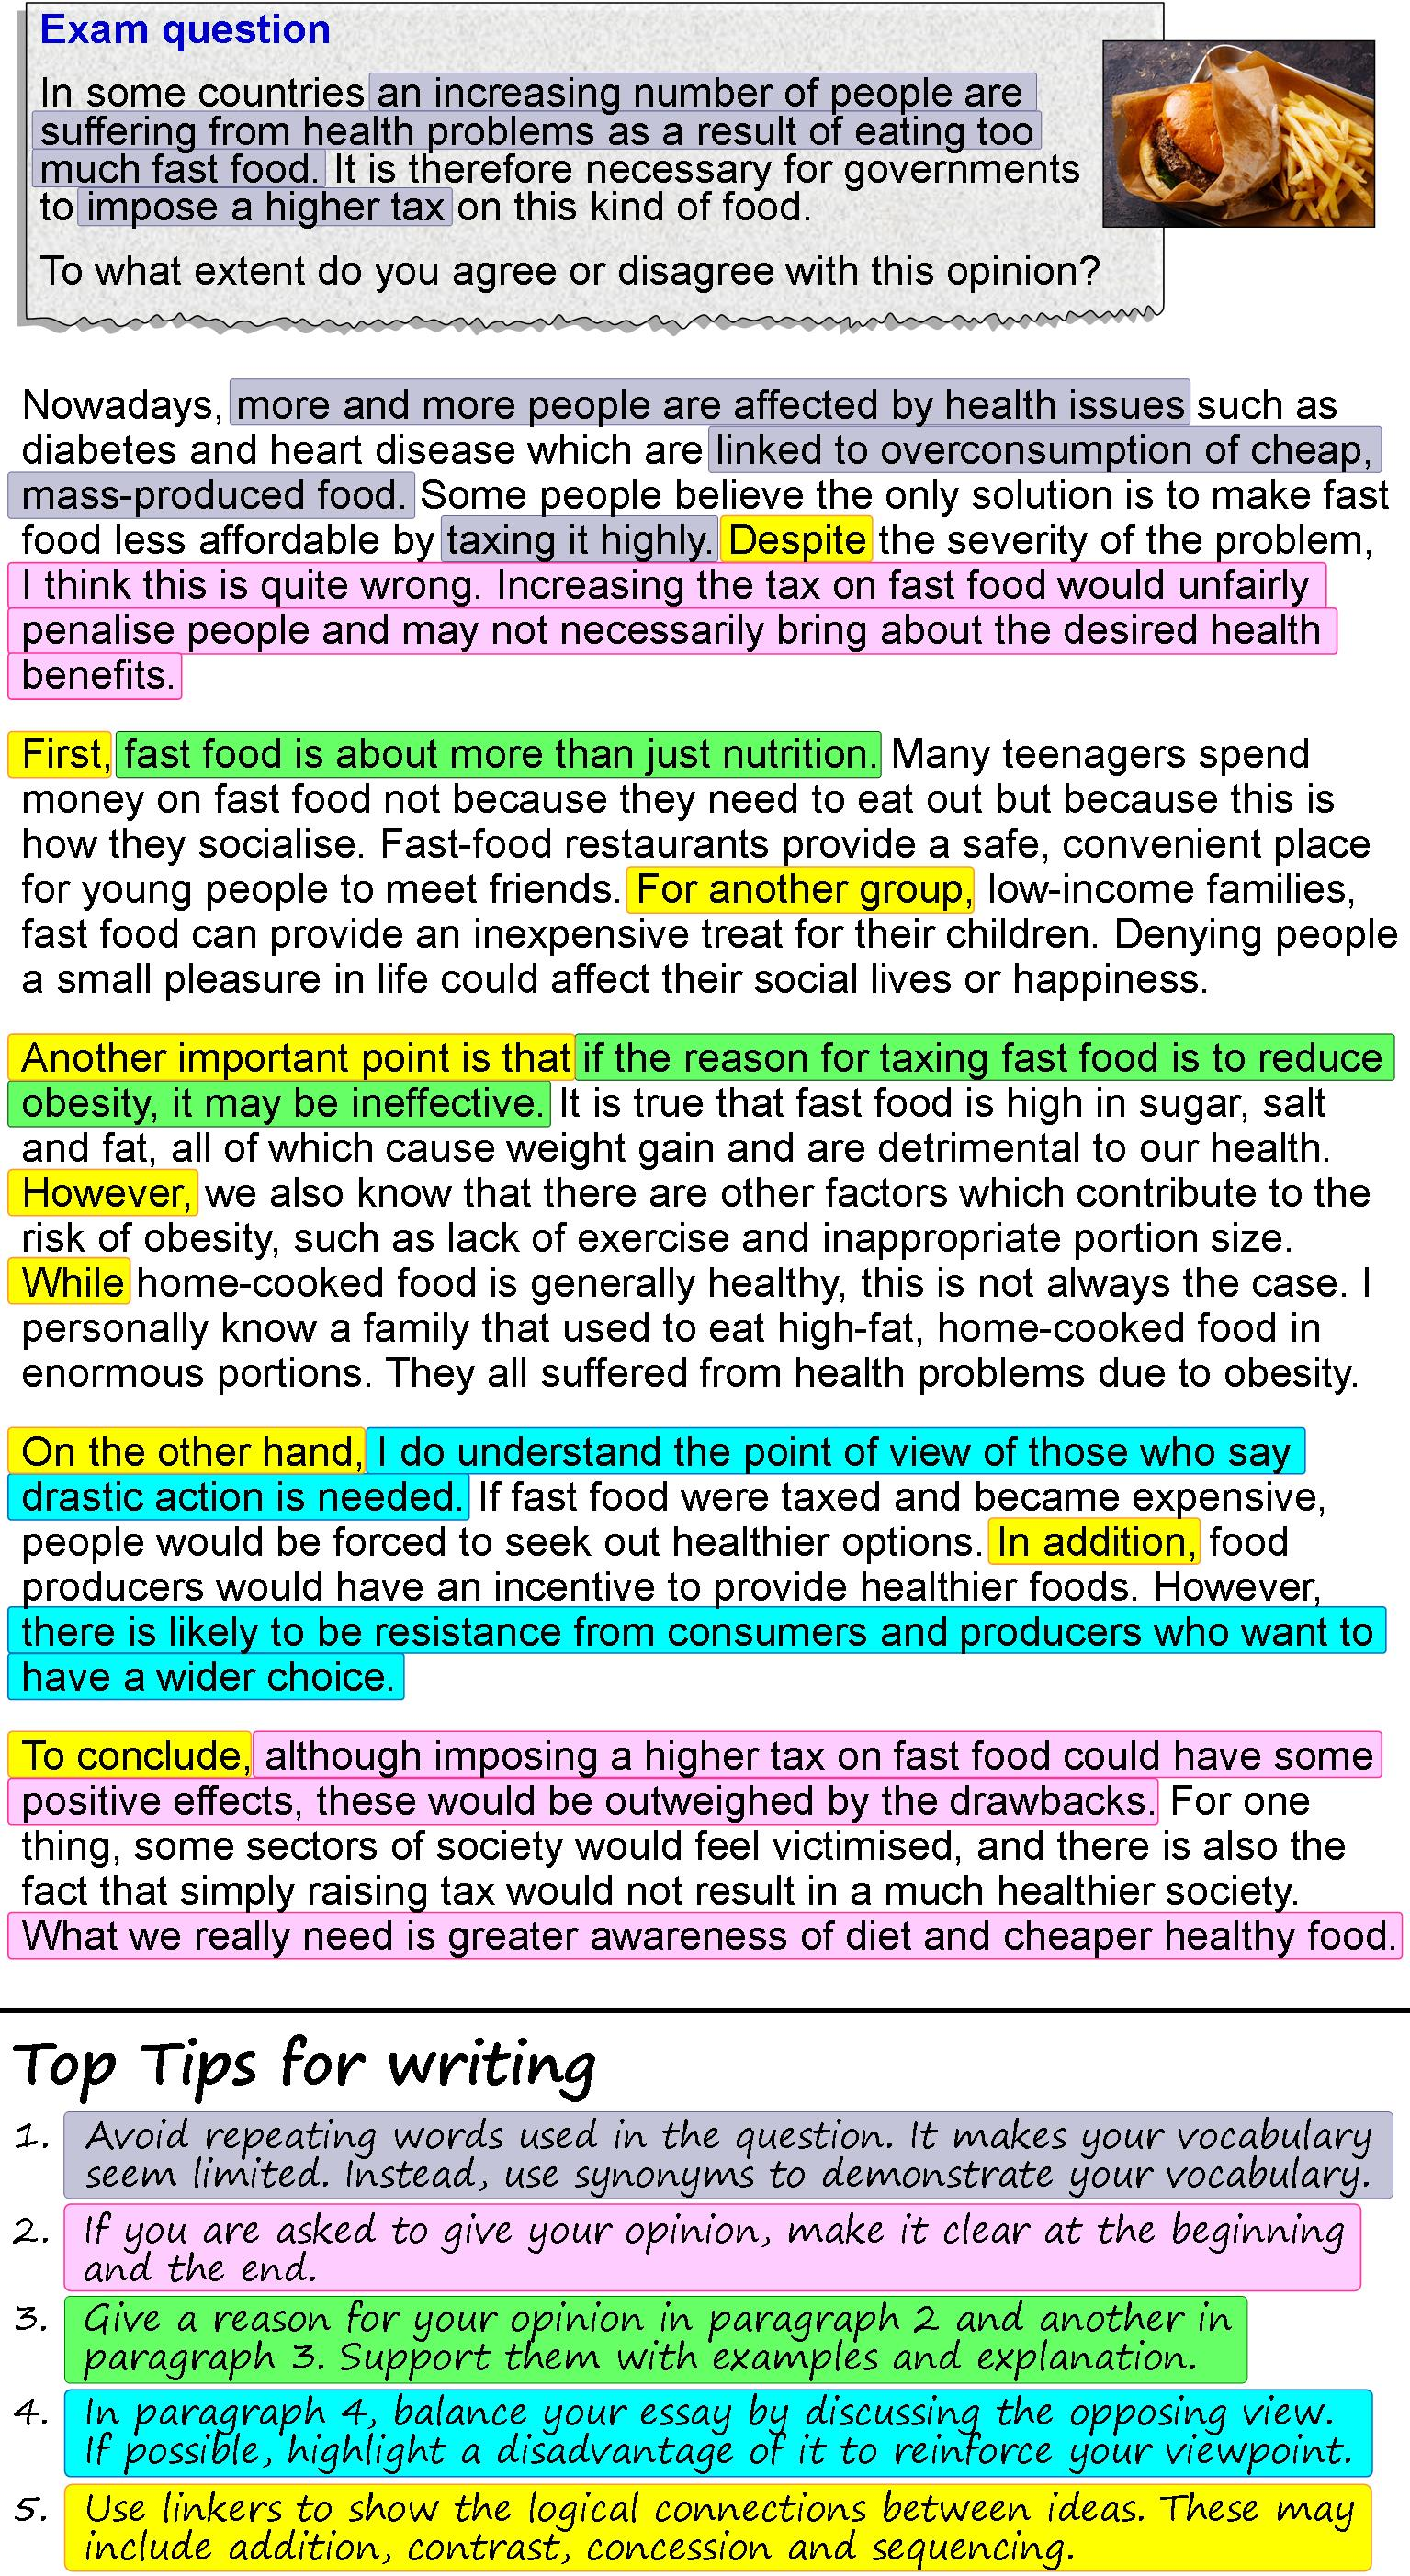 008 An Opinion Essay About Fast Food 4 Example Healthy Impressive Eating In French Pt3 Spm Full